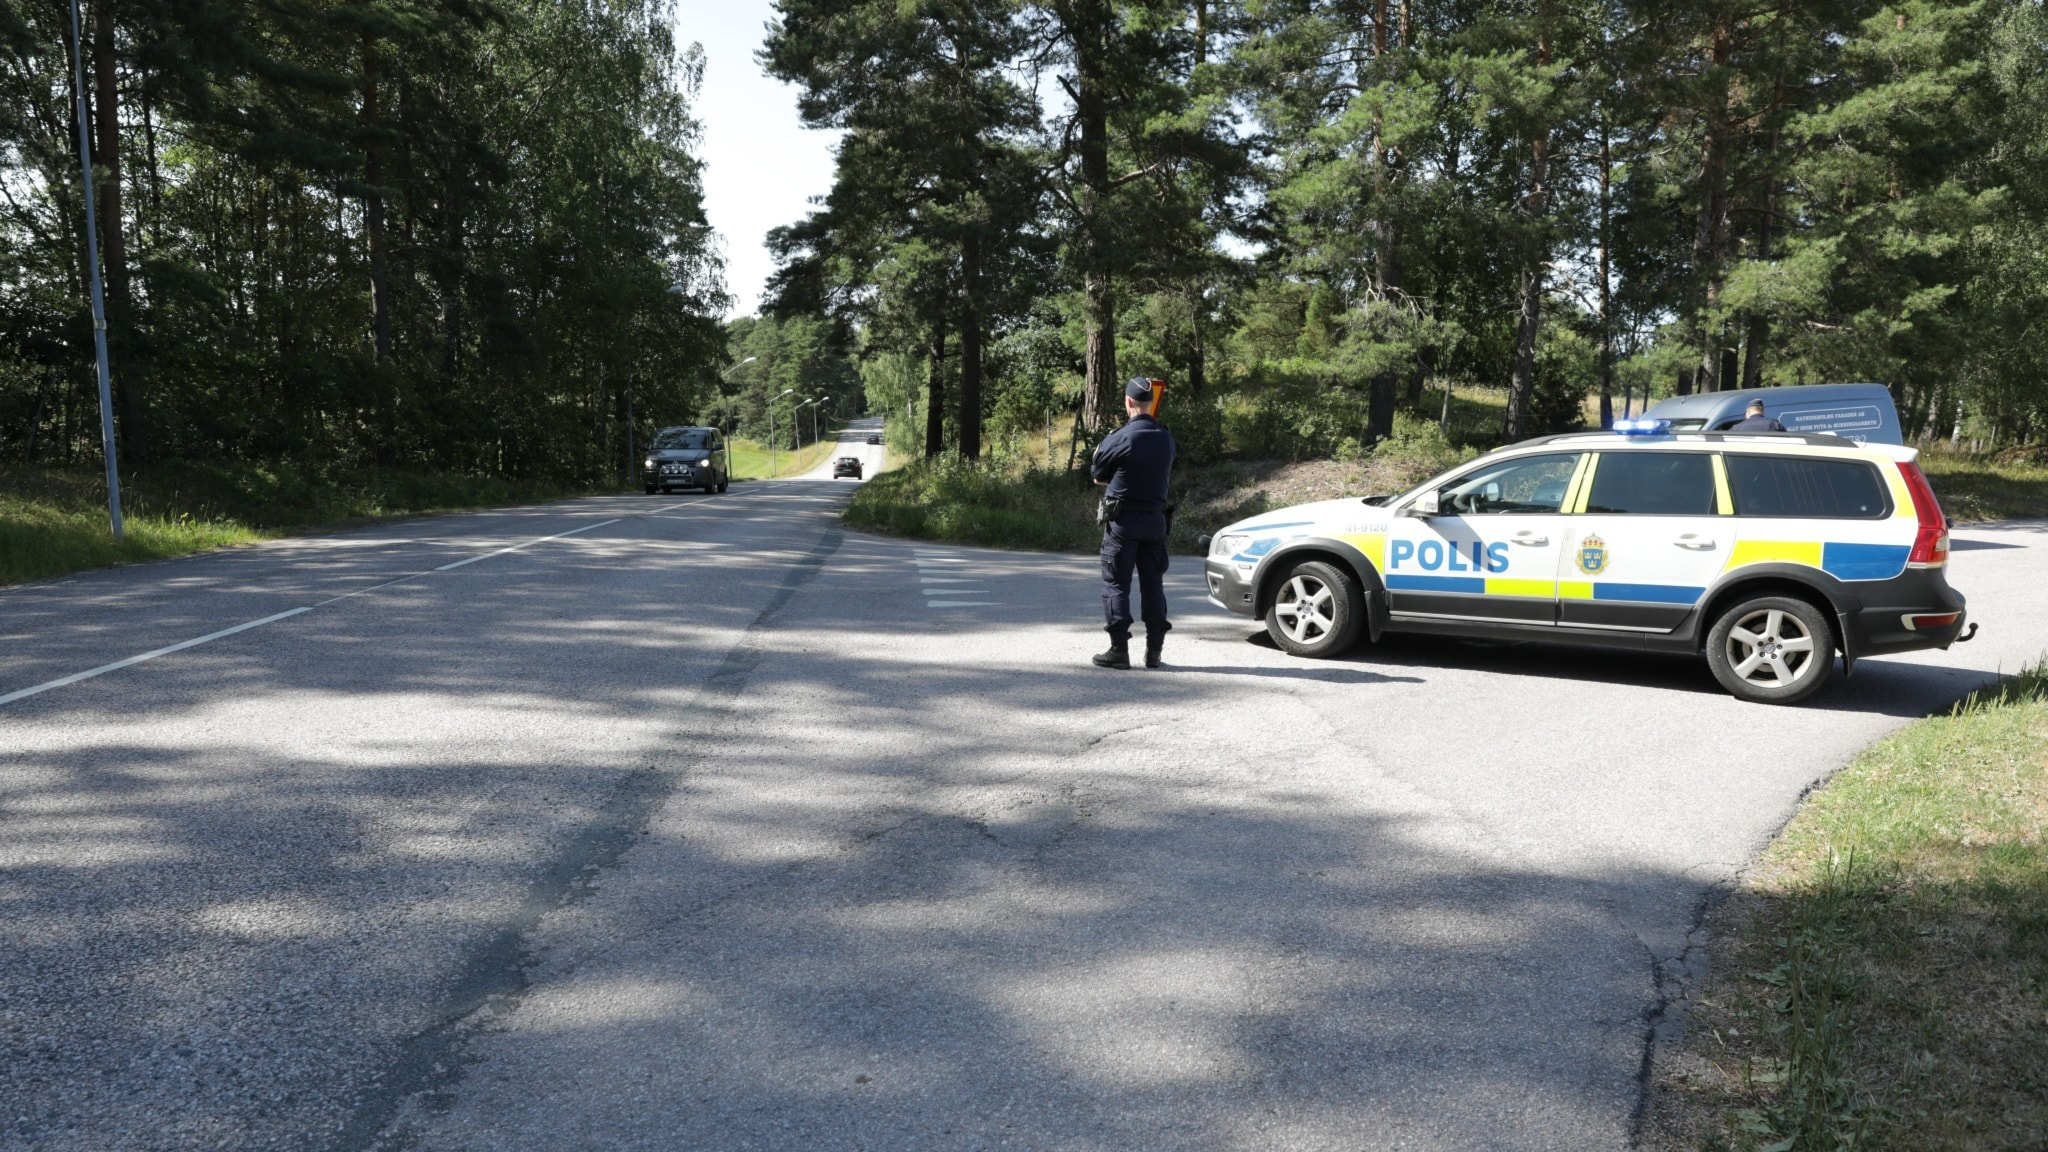 A parked police car on a forest road.